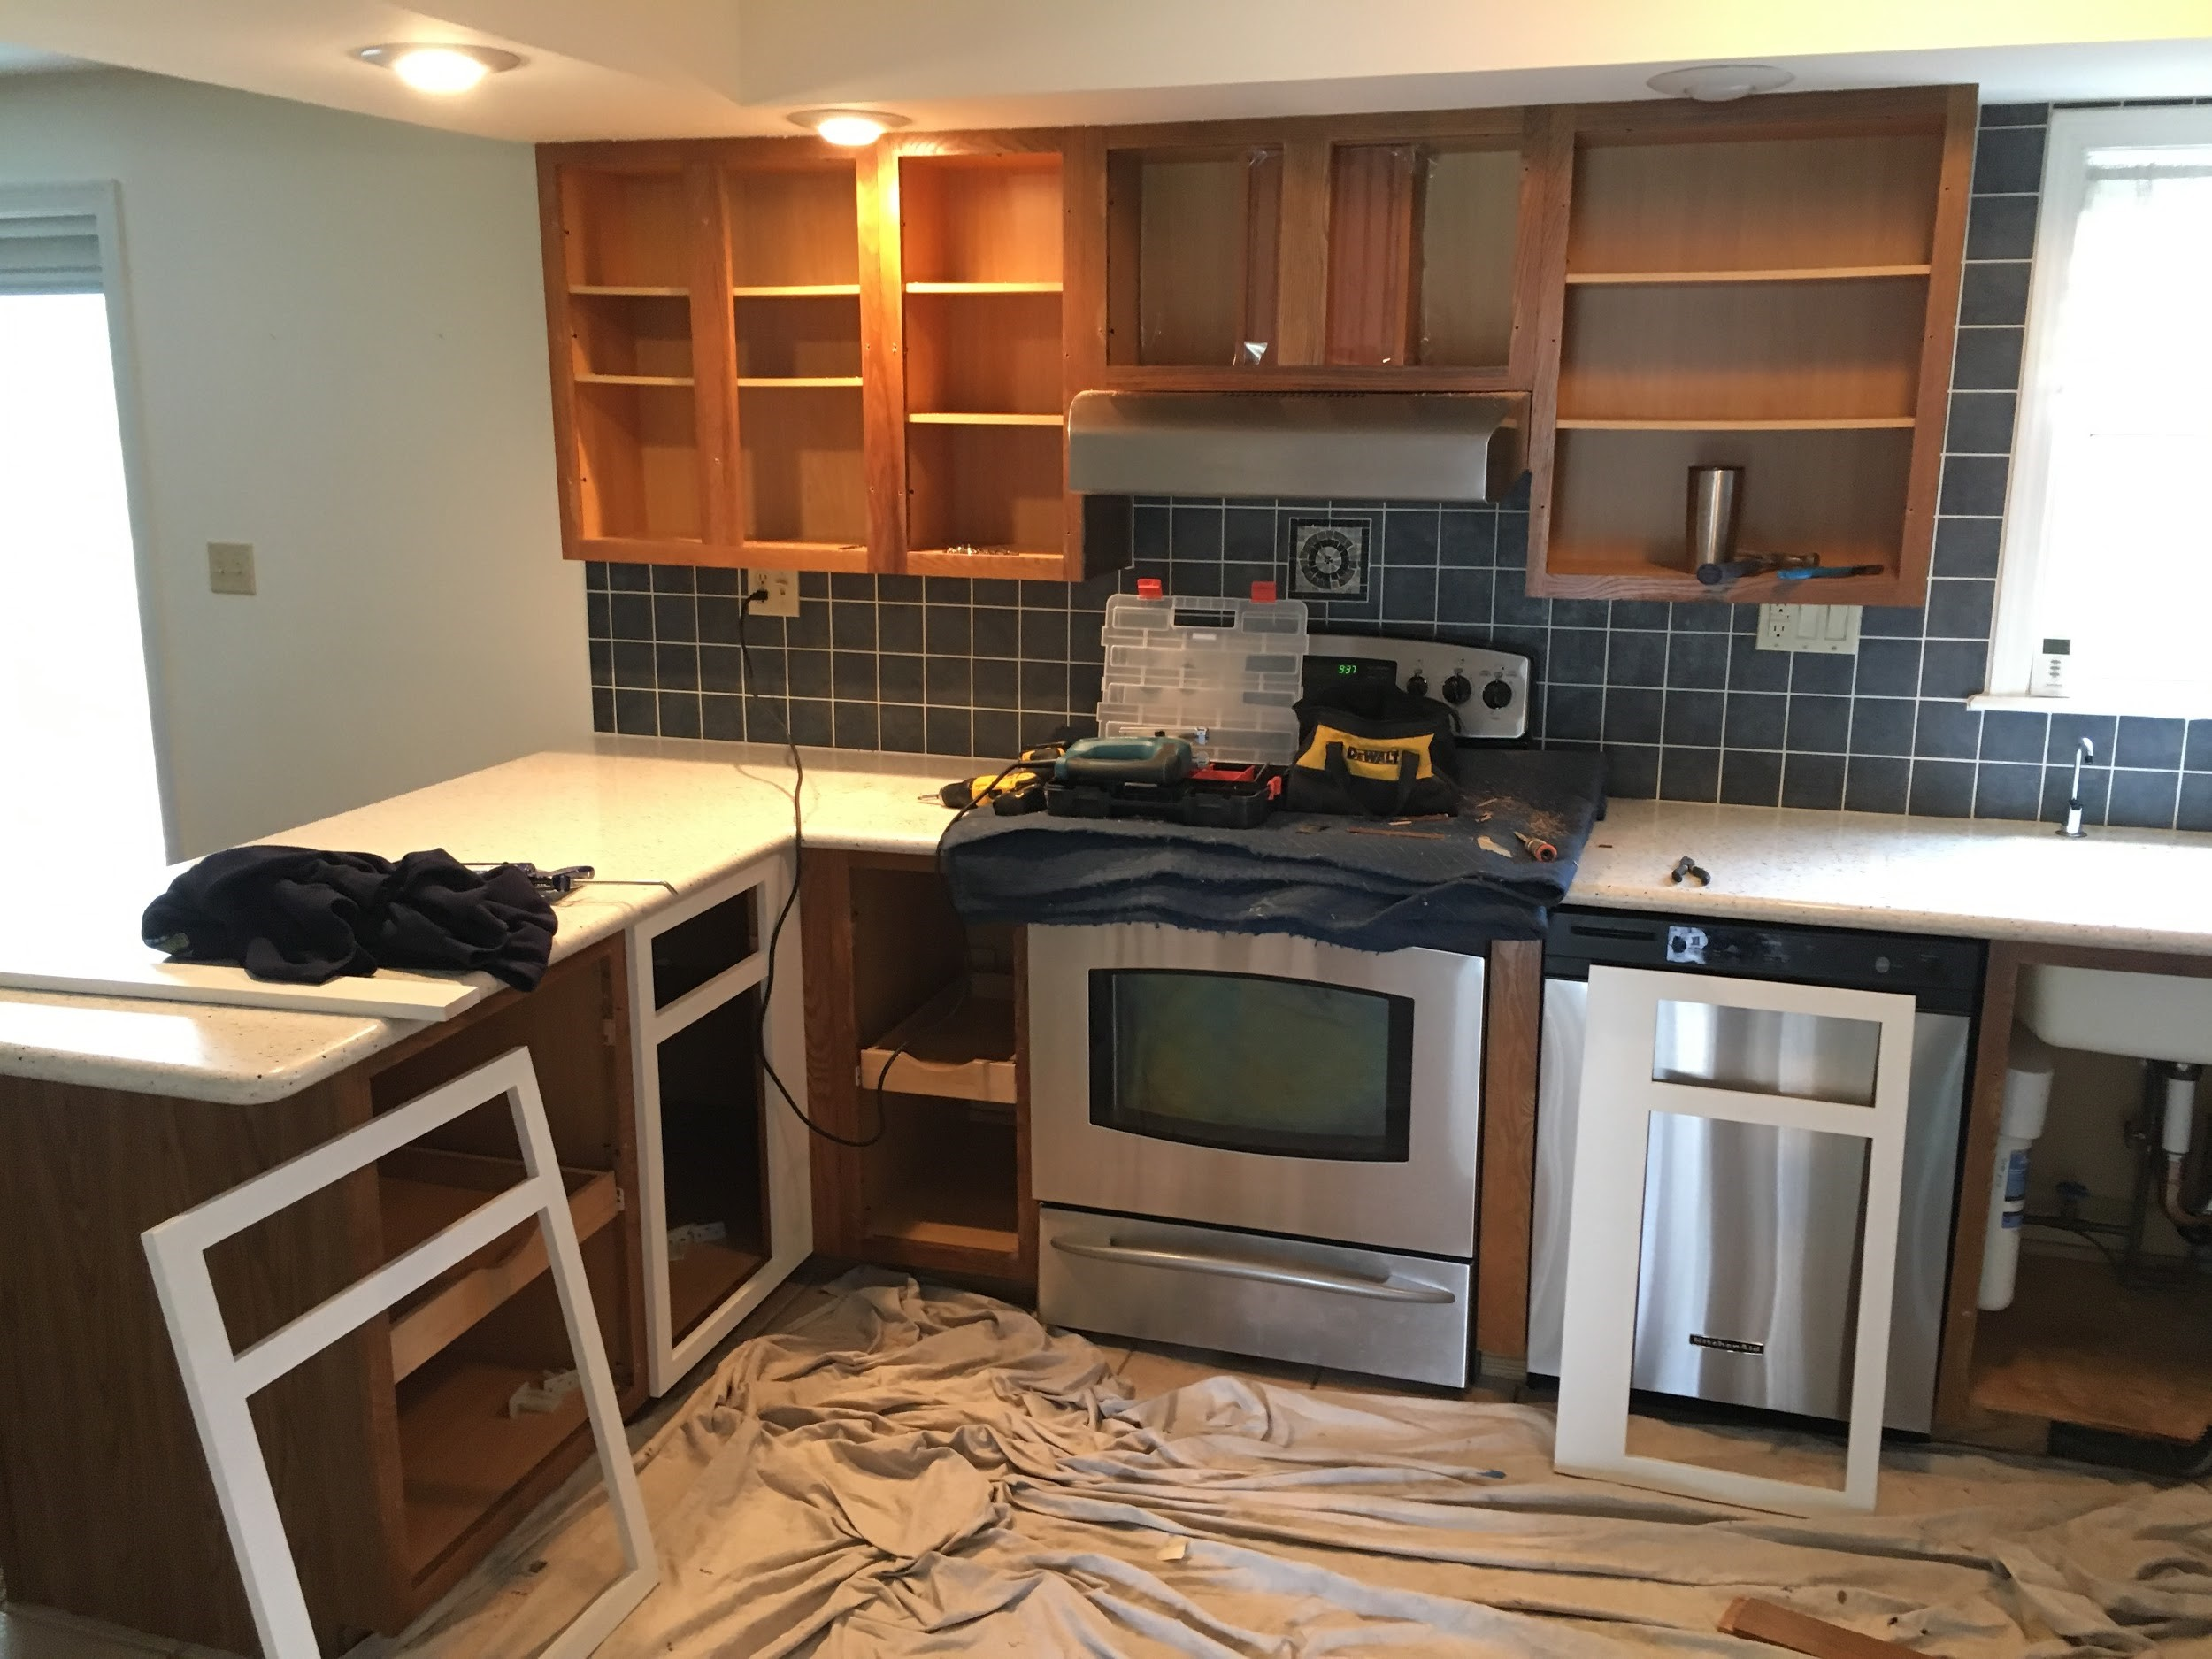 Kitchen Refacing Services in Bucks County PA & Burlington County